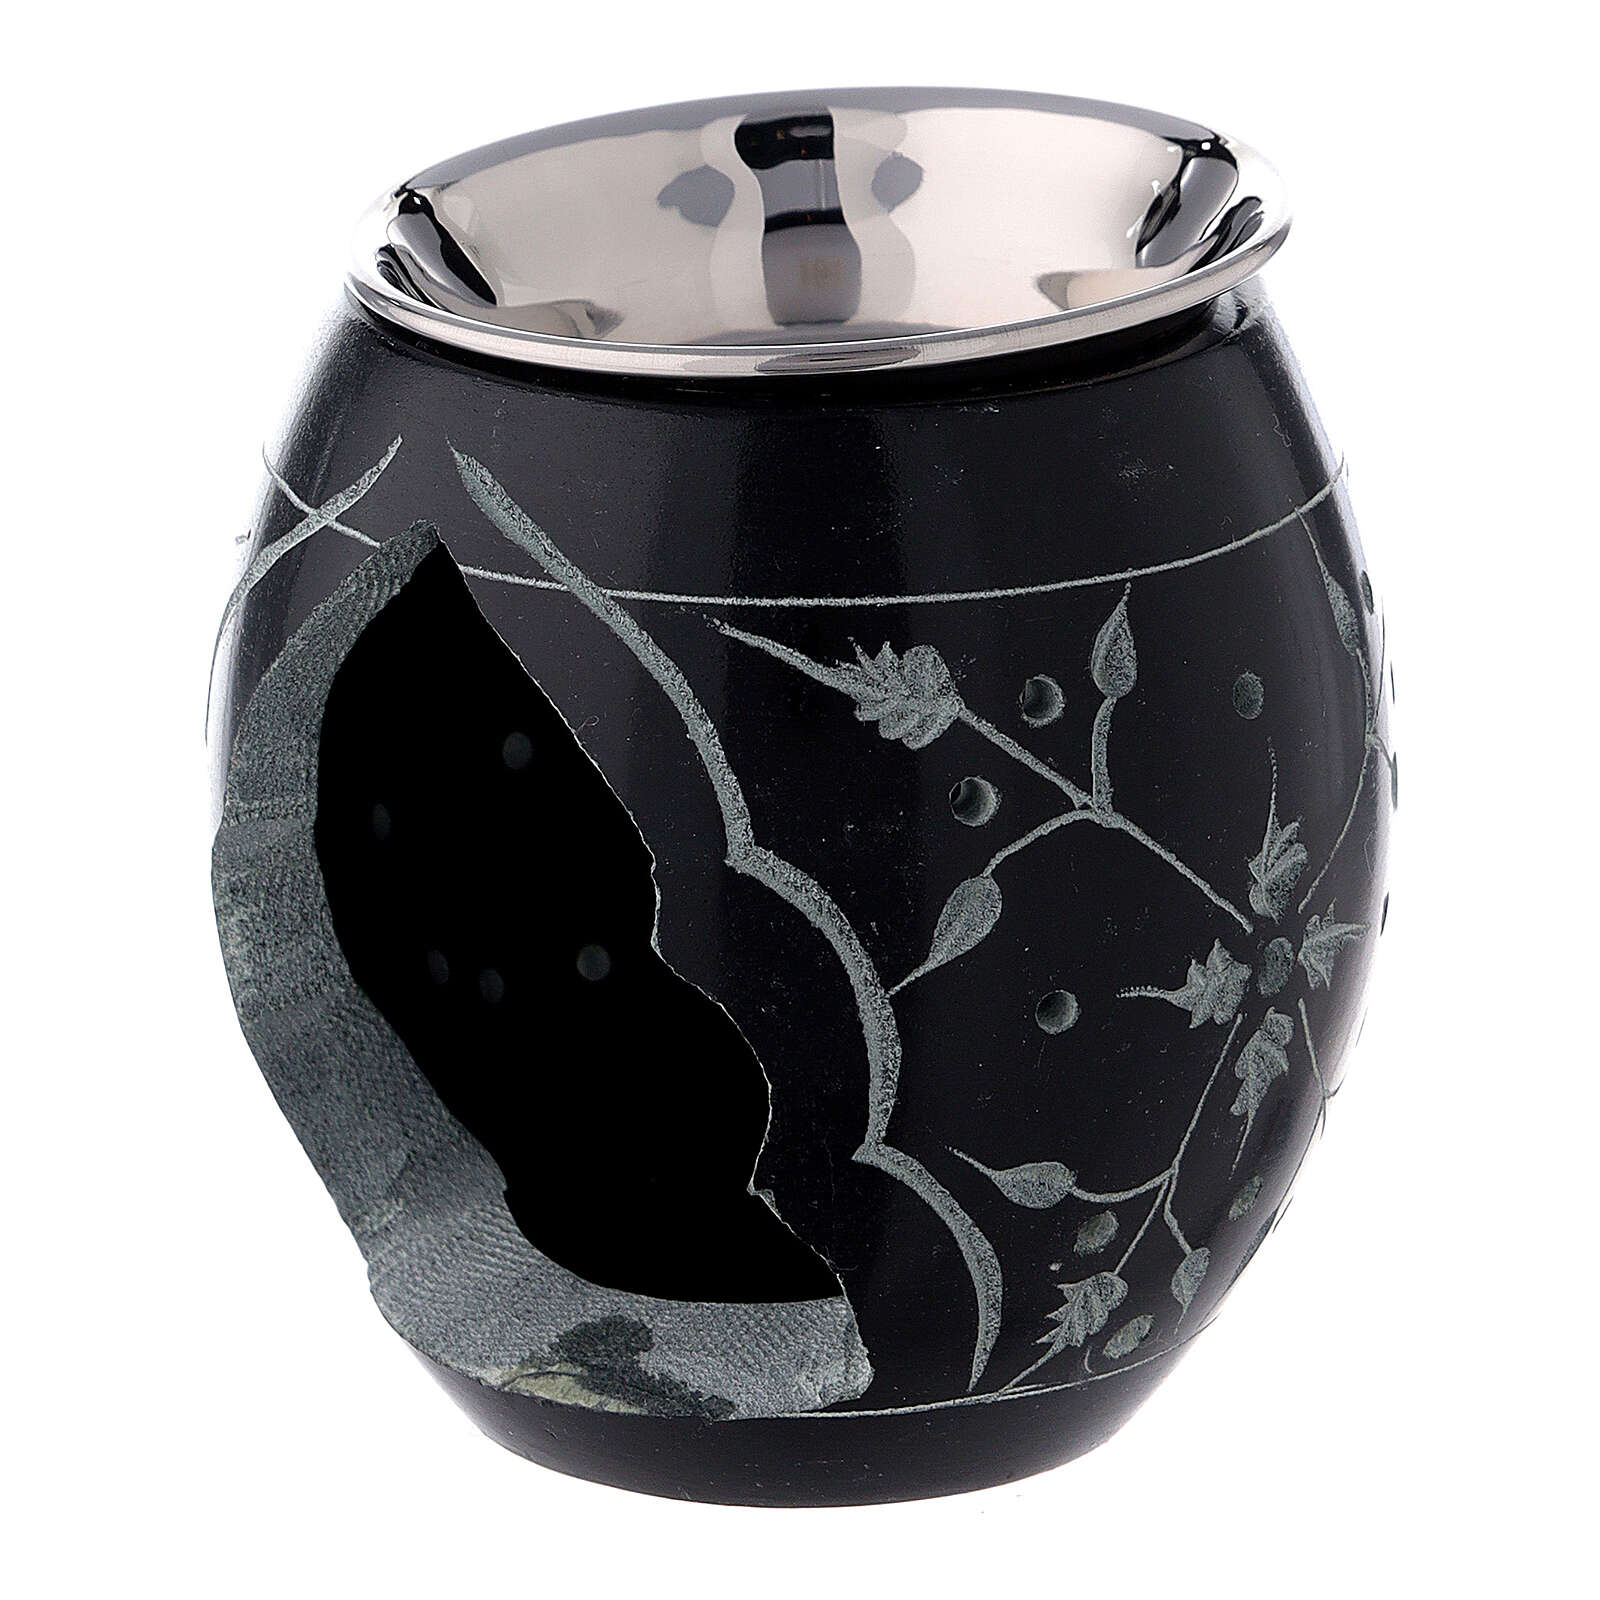 Black soapstone incense burner with engraved flowers 3 in 3